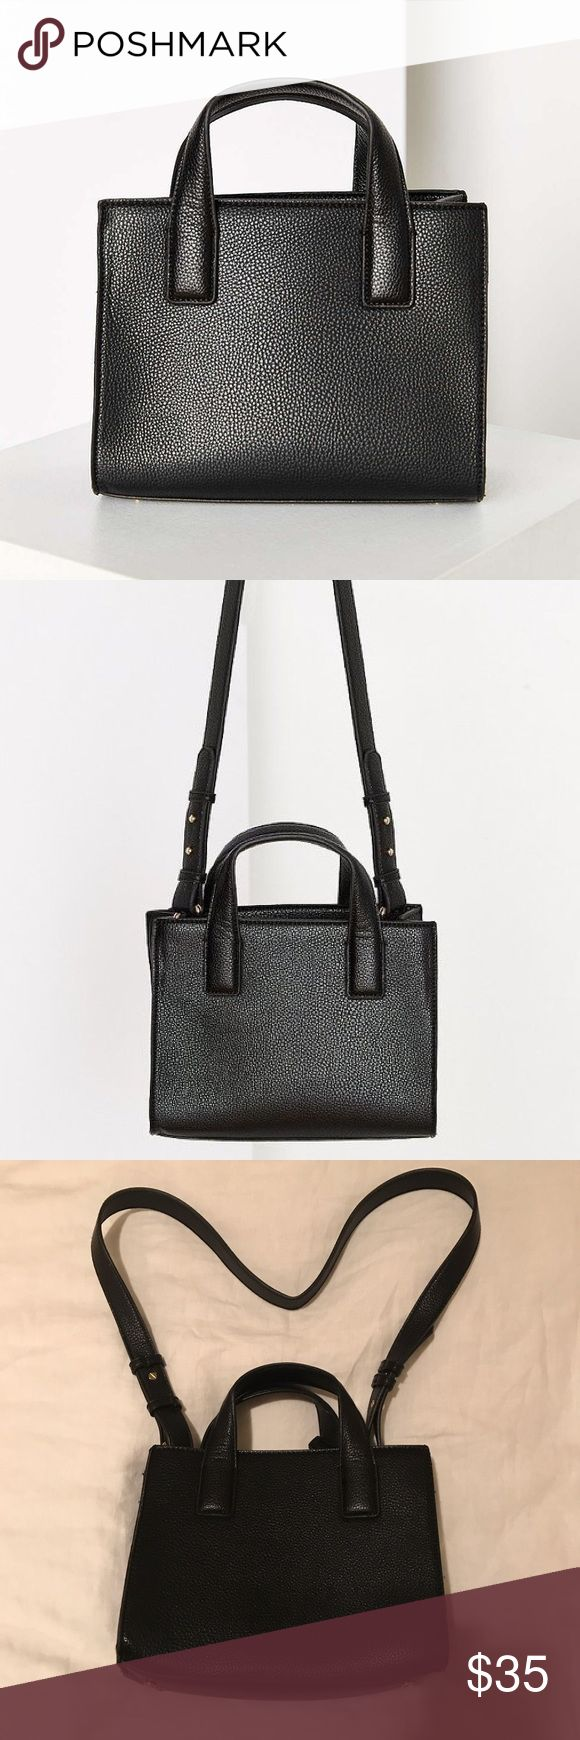 NWOT Urban Outfitters Structured Mini Tote Bag NWOT Urban Outfitters // Cooperative Structured Mini Tote Bag. Black vegan leather with texture. Long and short straps. Urban Outfitters Bags Crossbody Bags